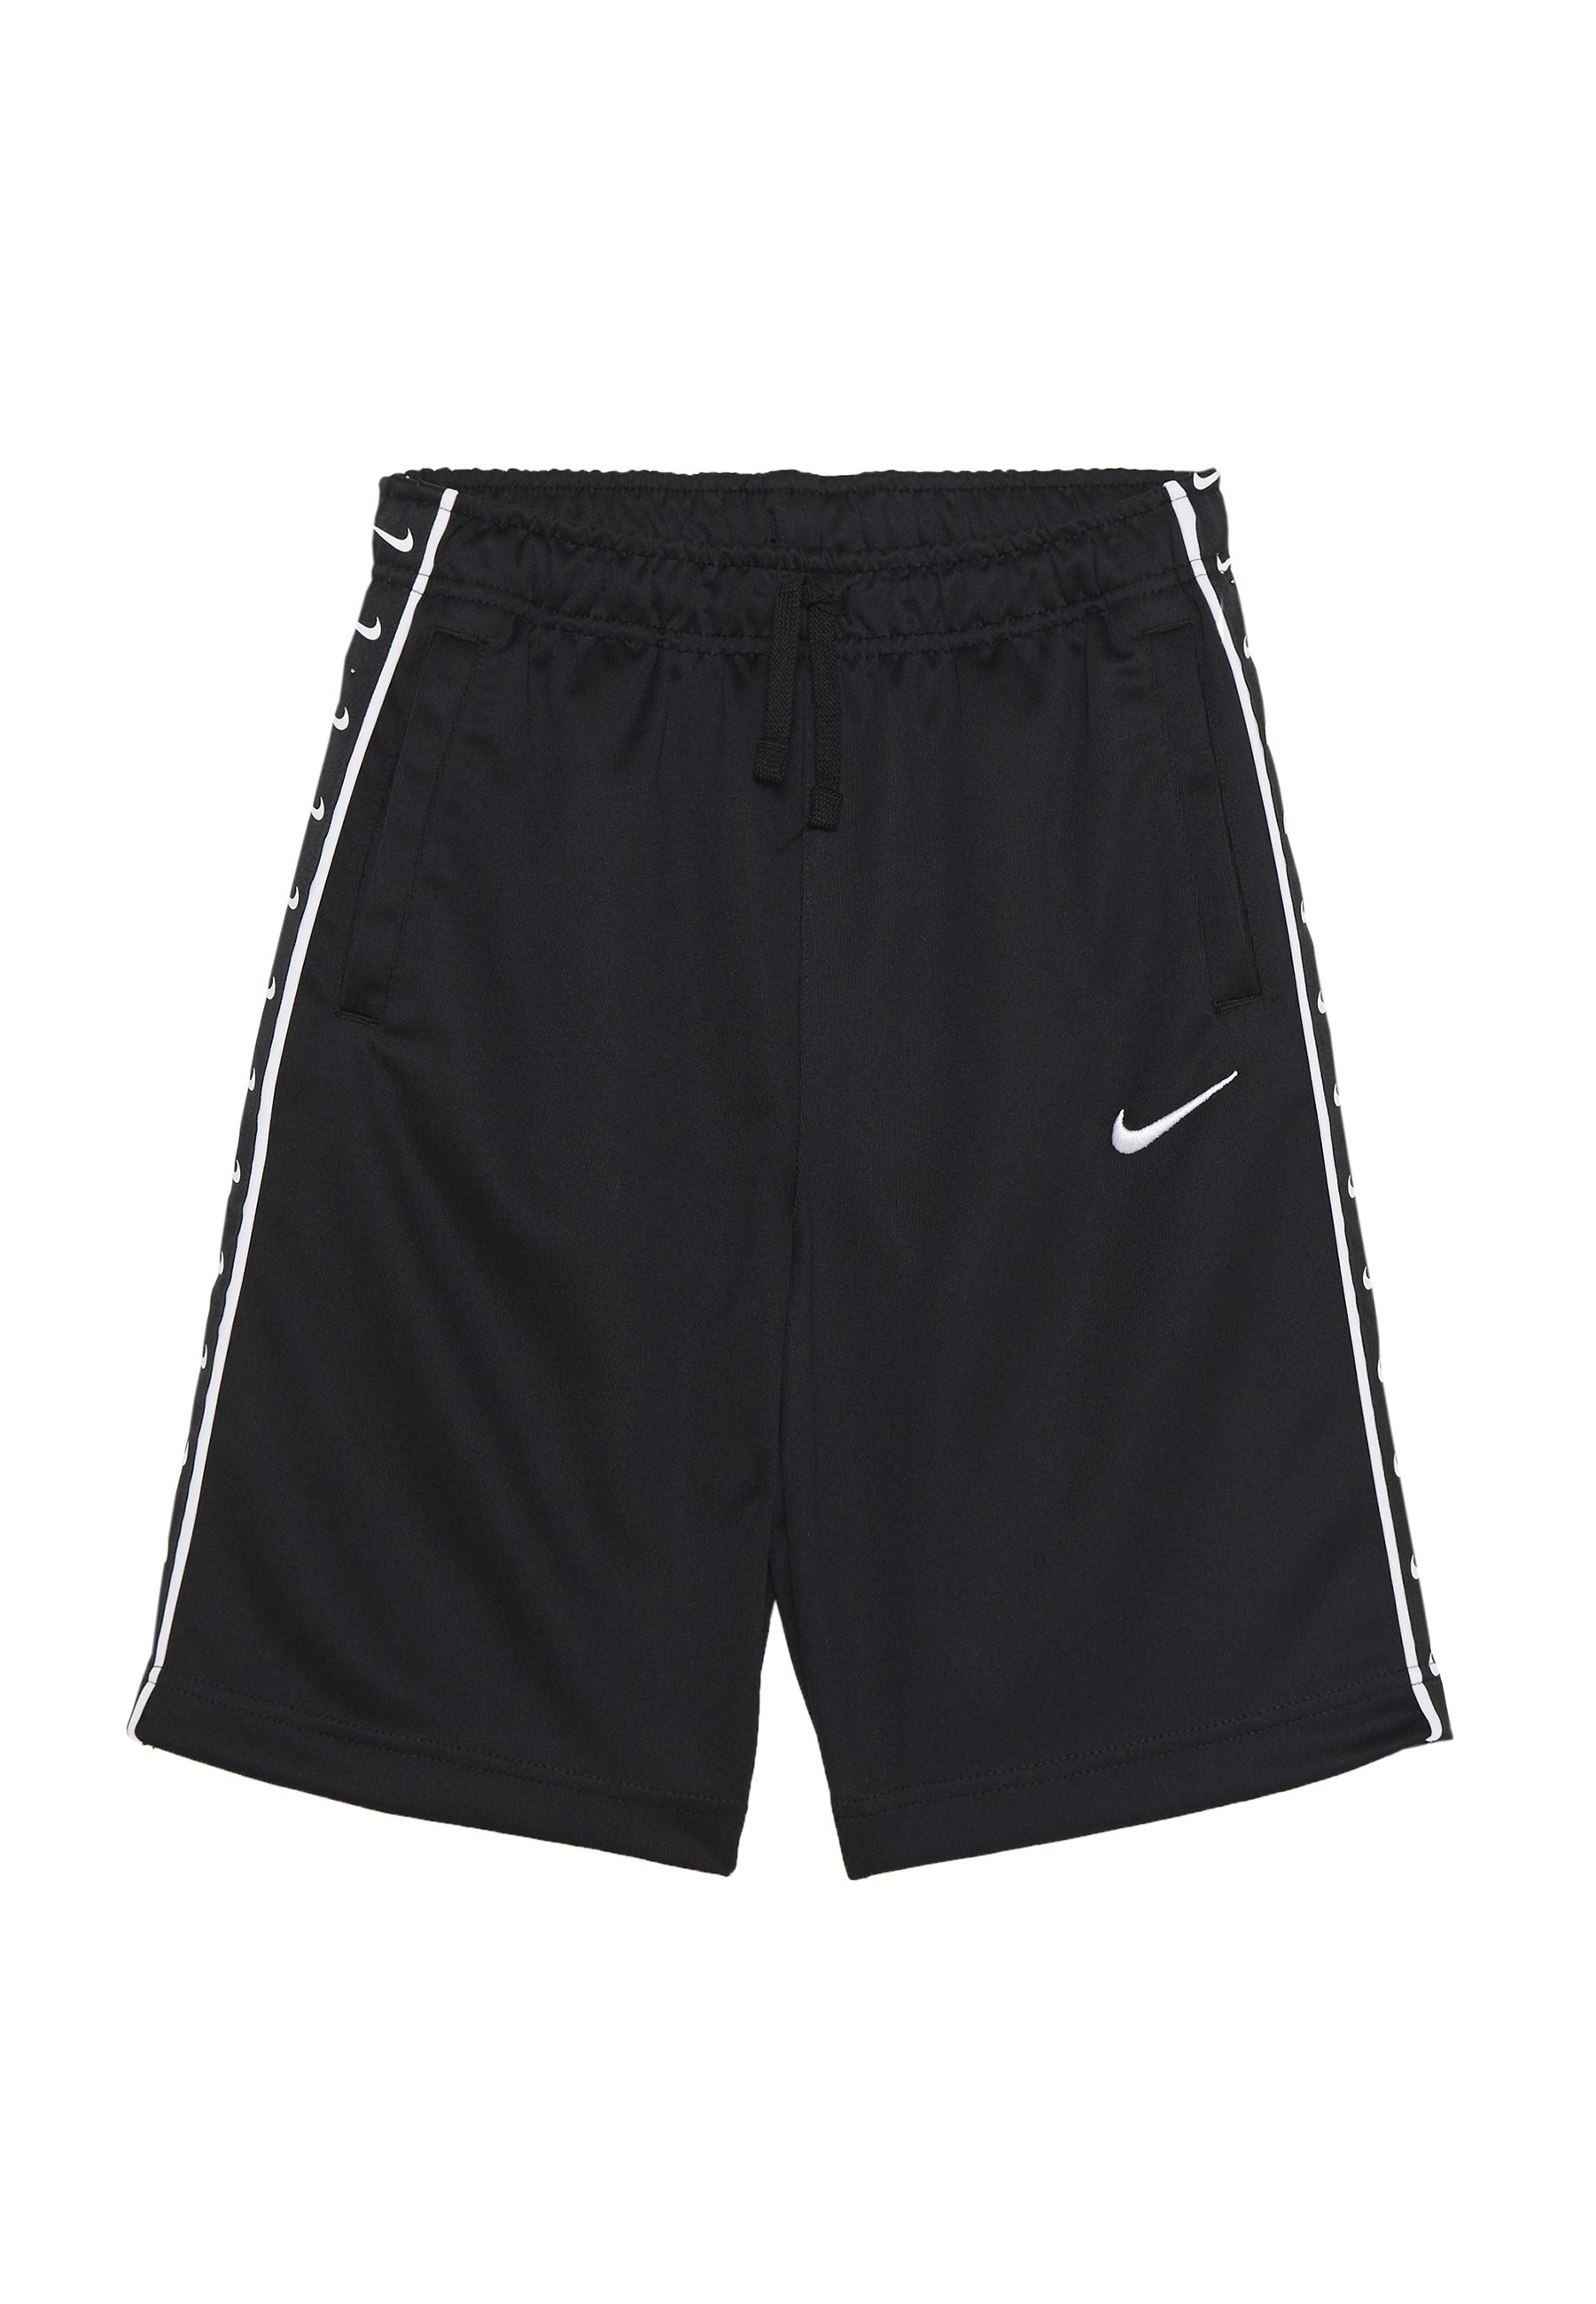 TAPE Short black